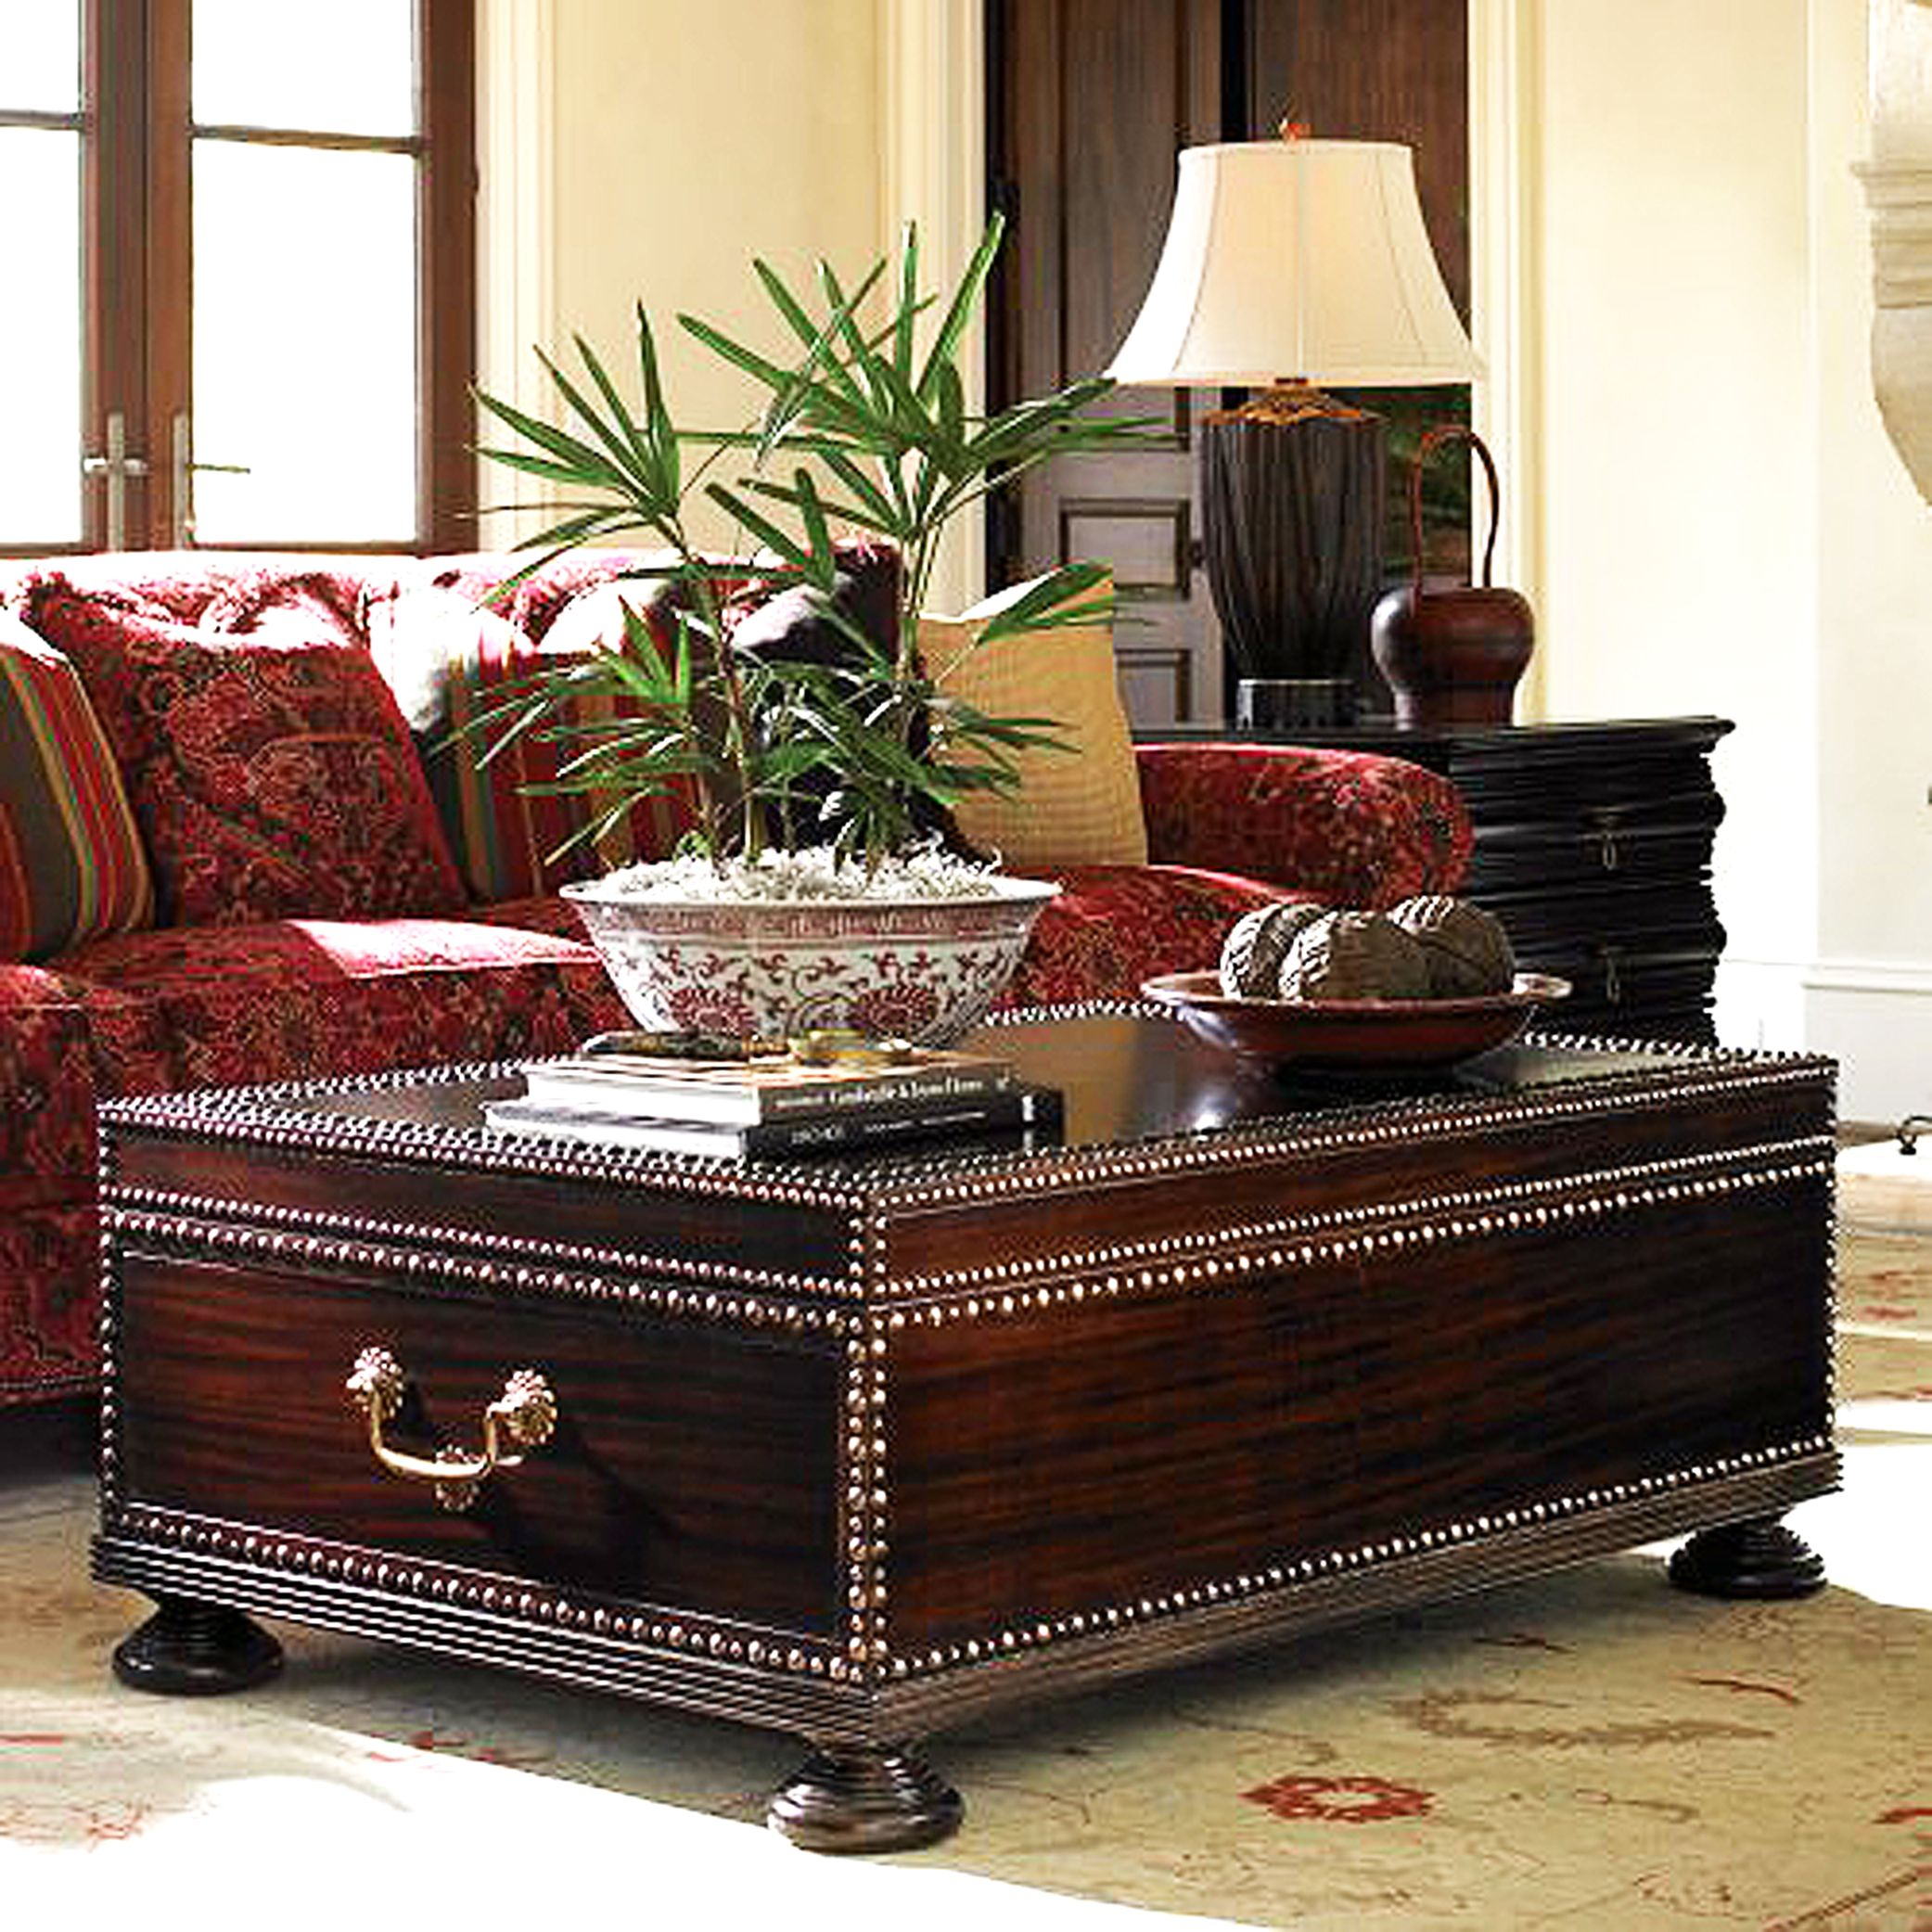 Get exclusive coffee tables from Renaisaance Homez made of classy